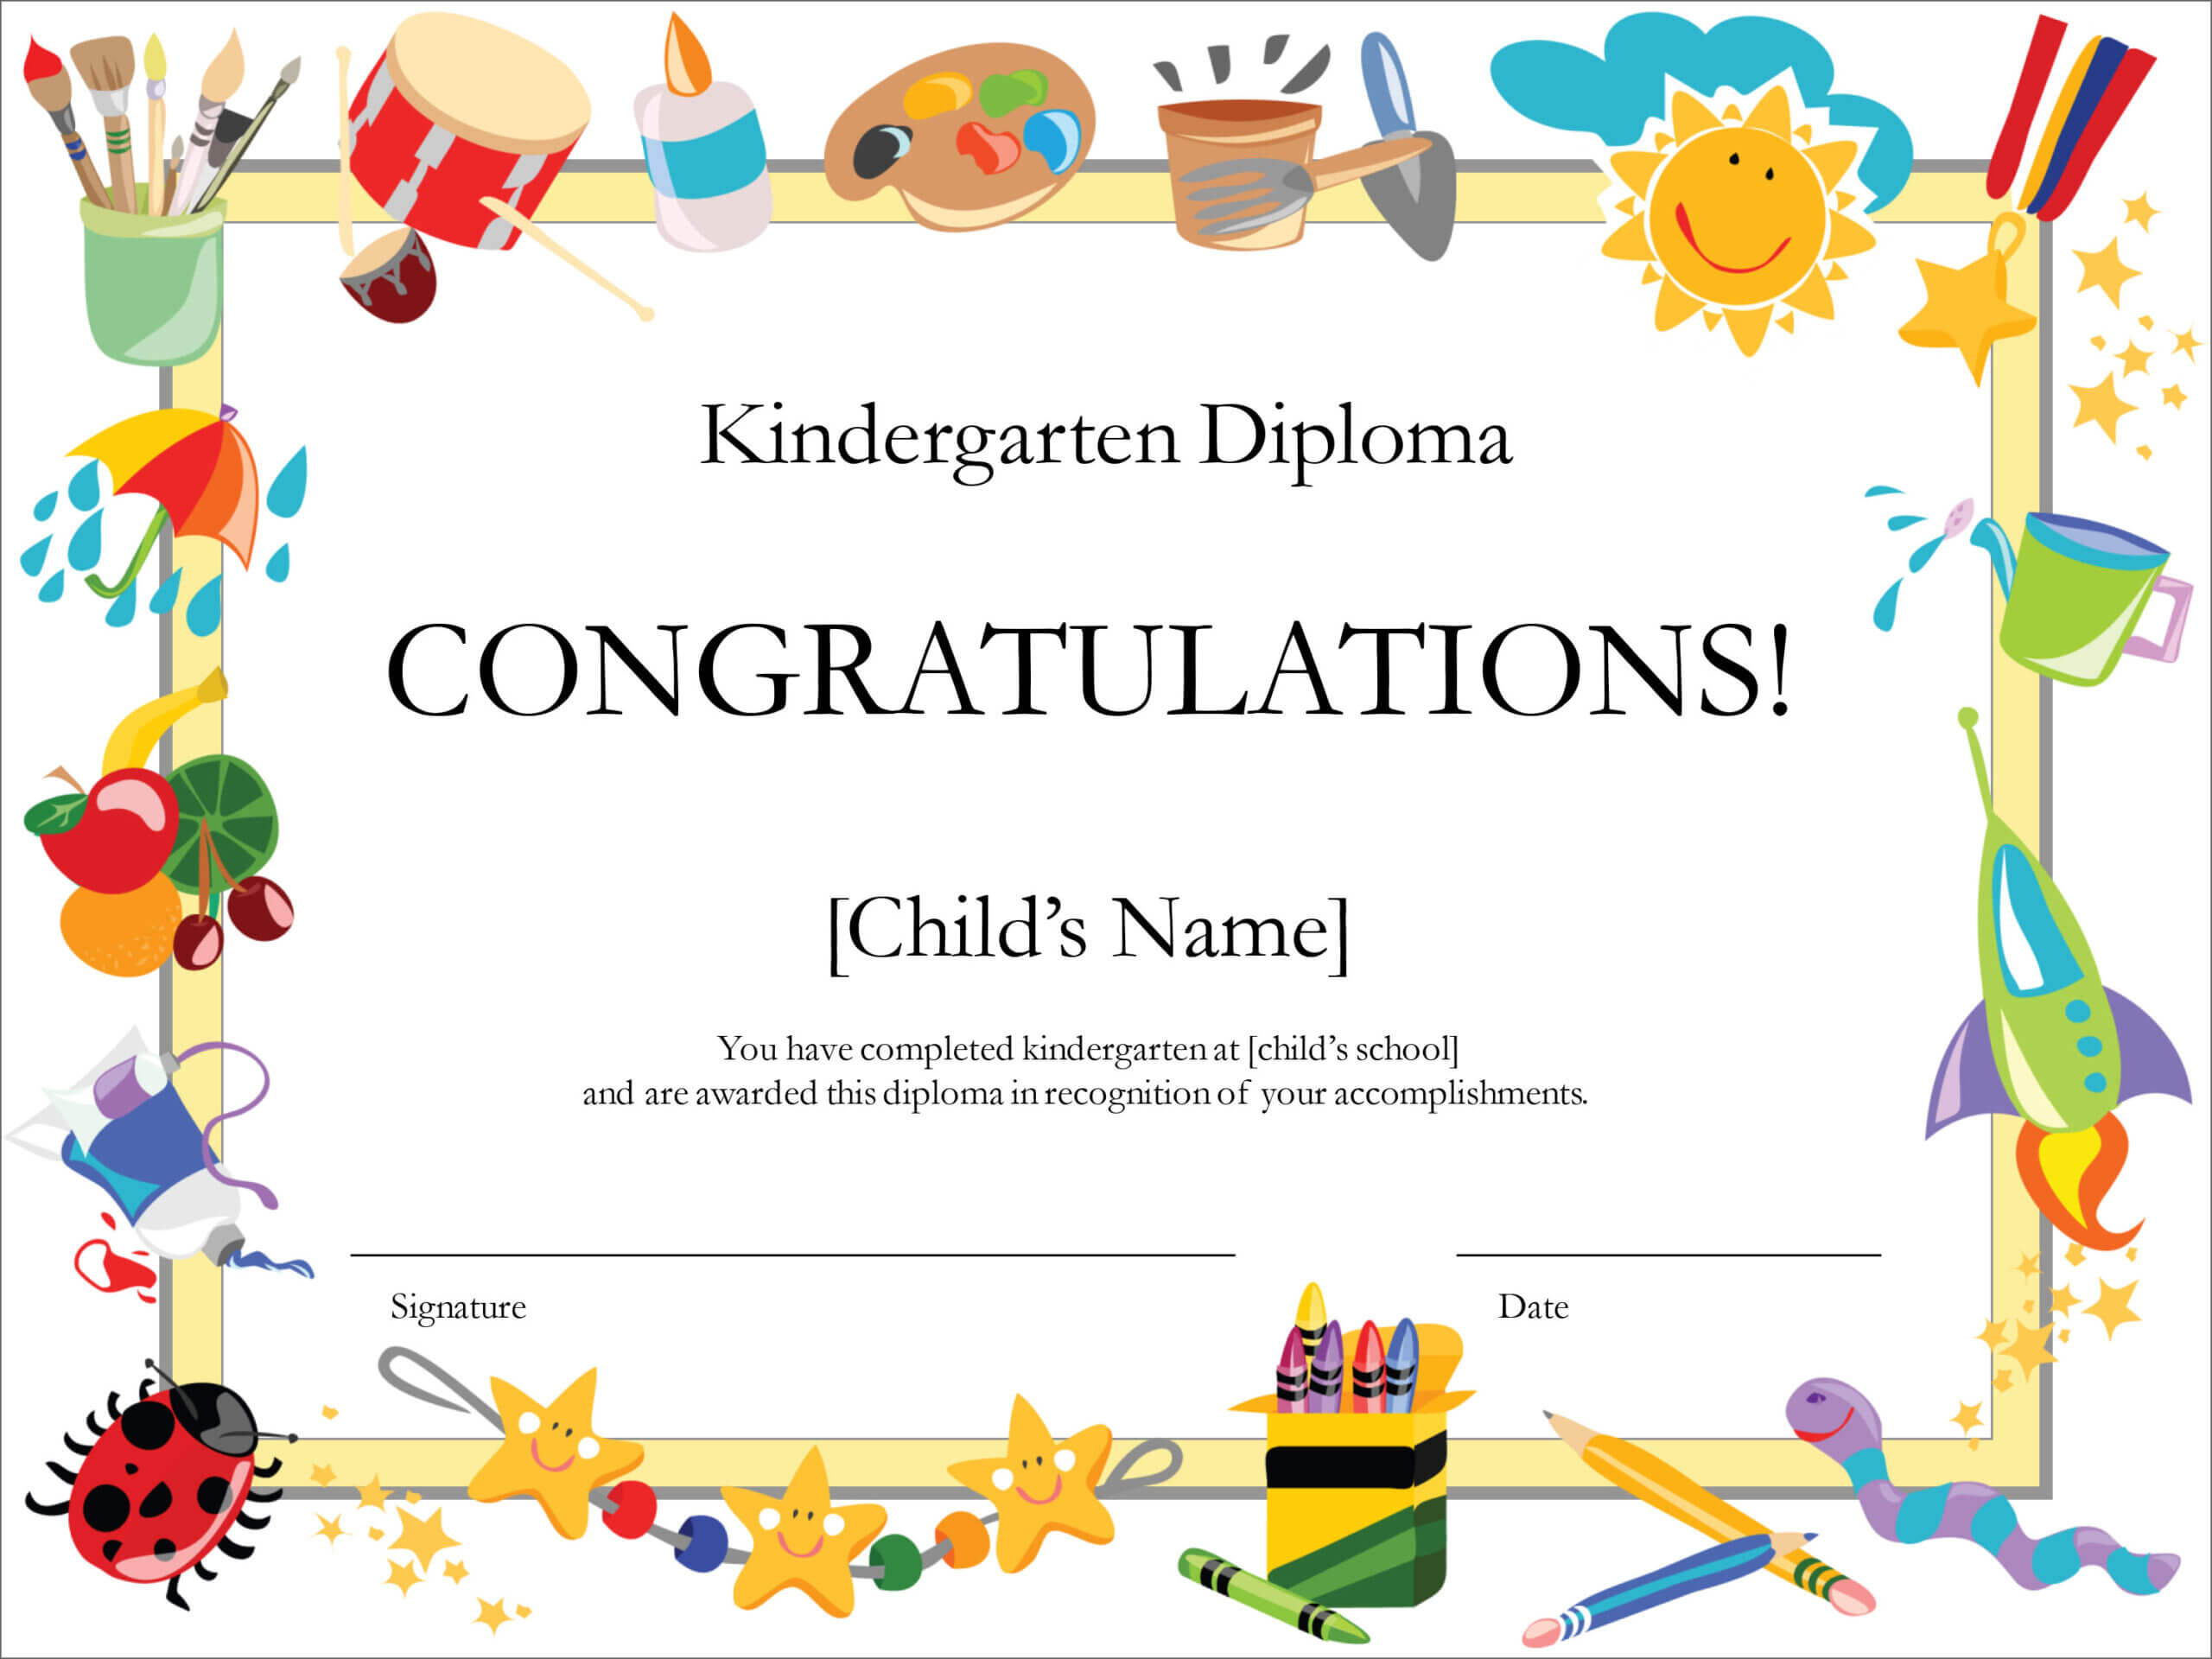 50 Free Creative Blank Certificate Templates In Psd Inside Certificate Templates For School